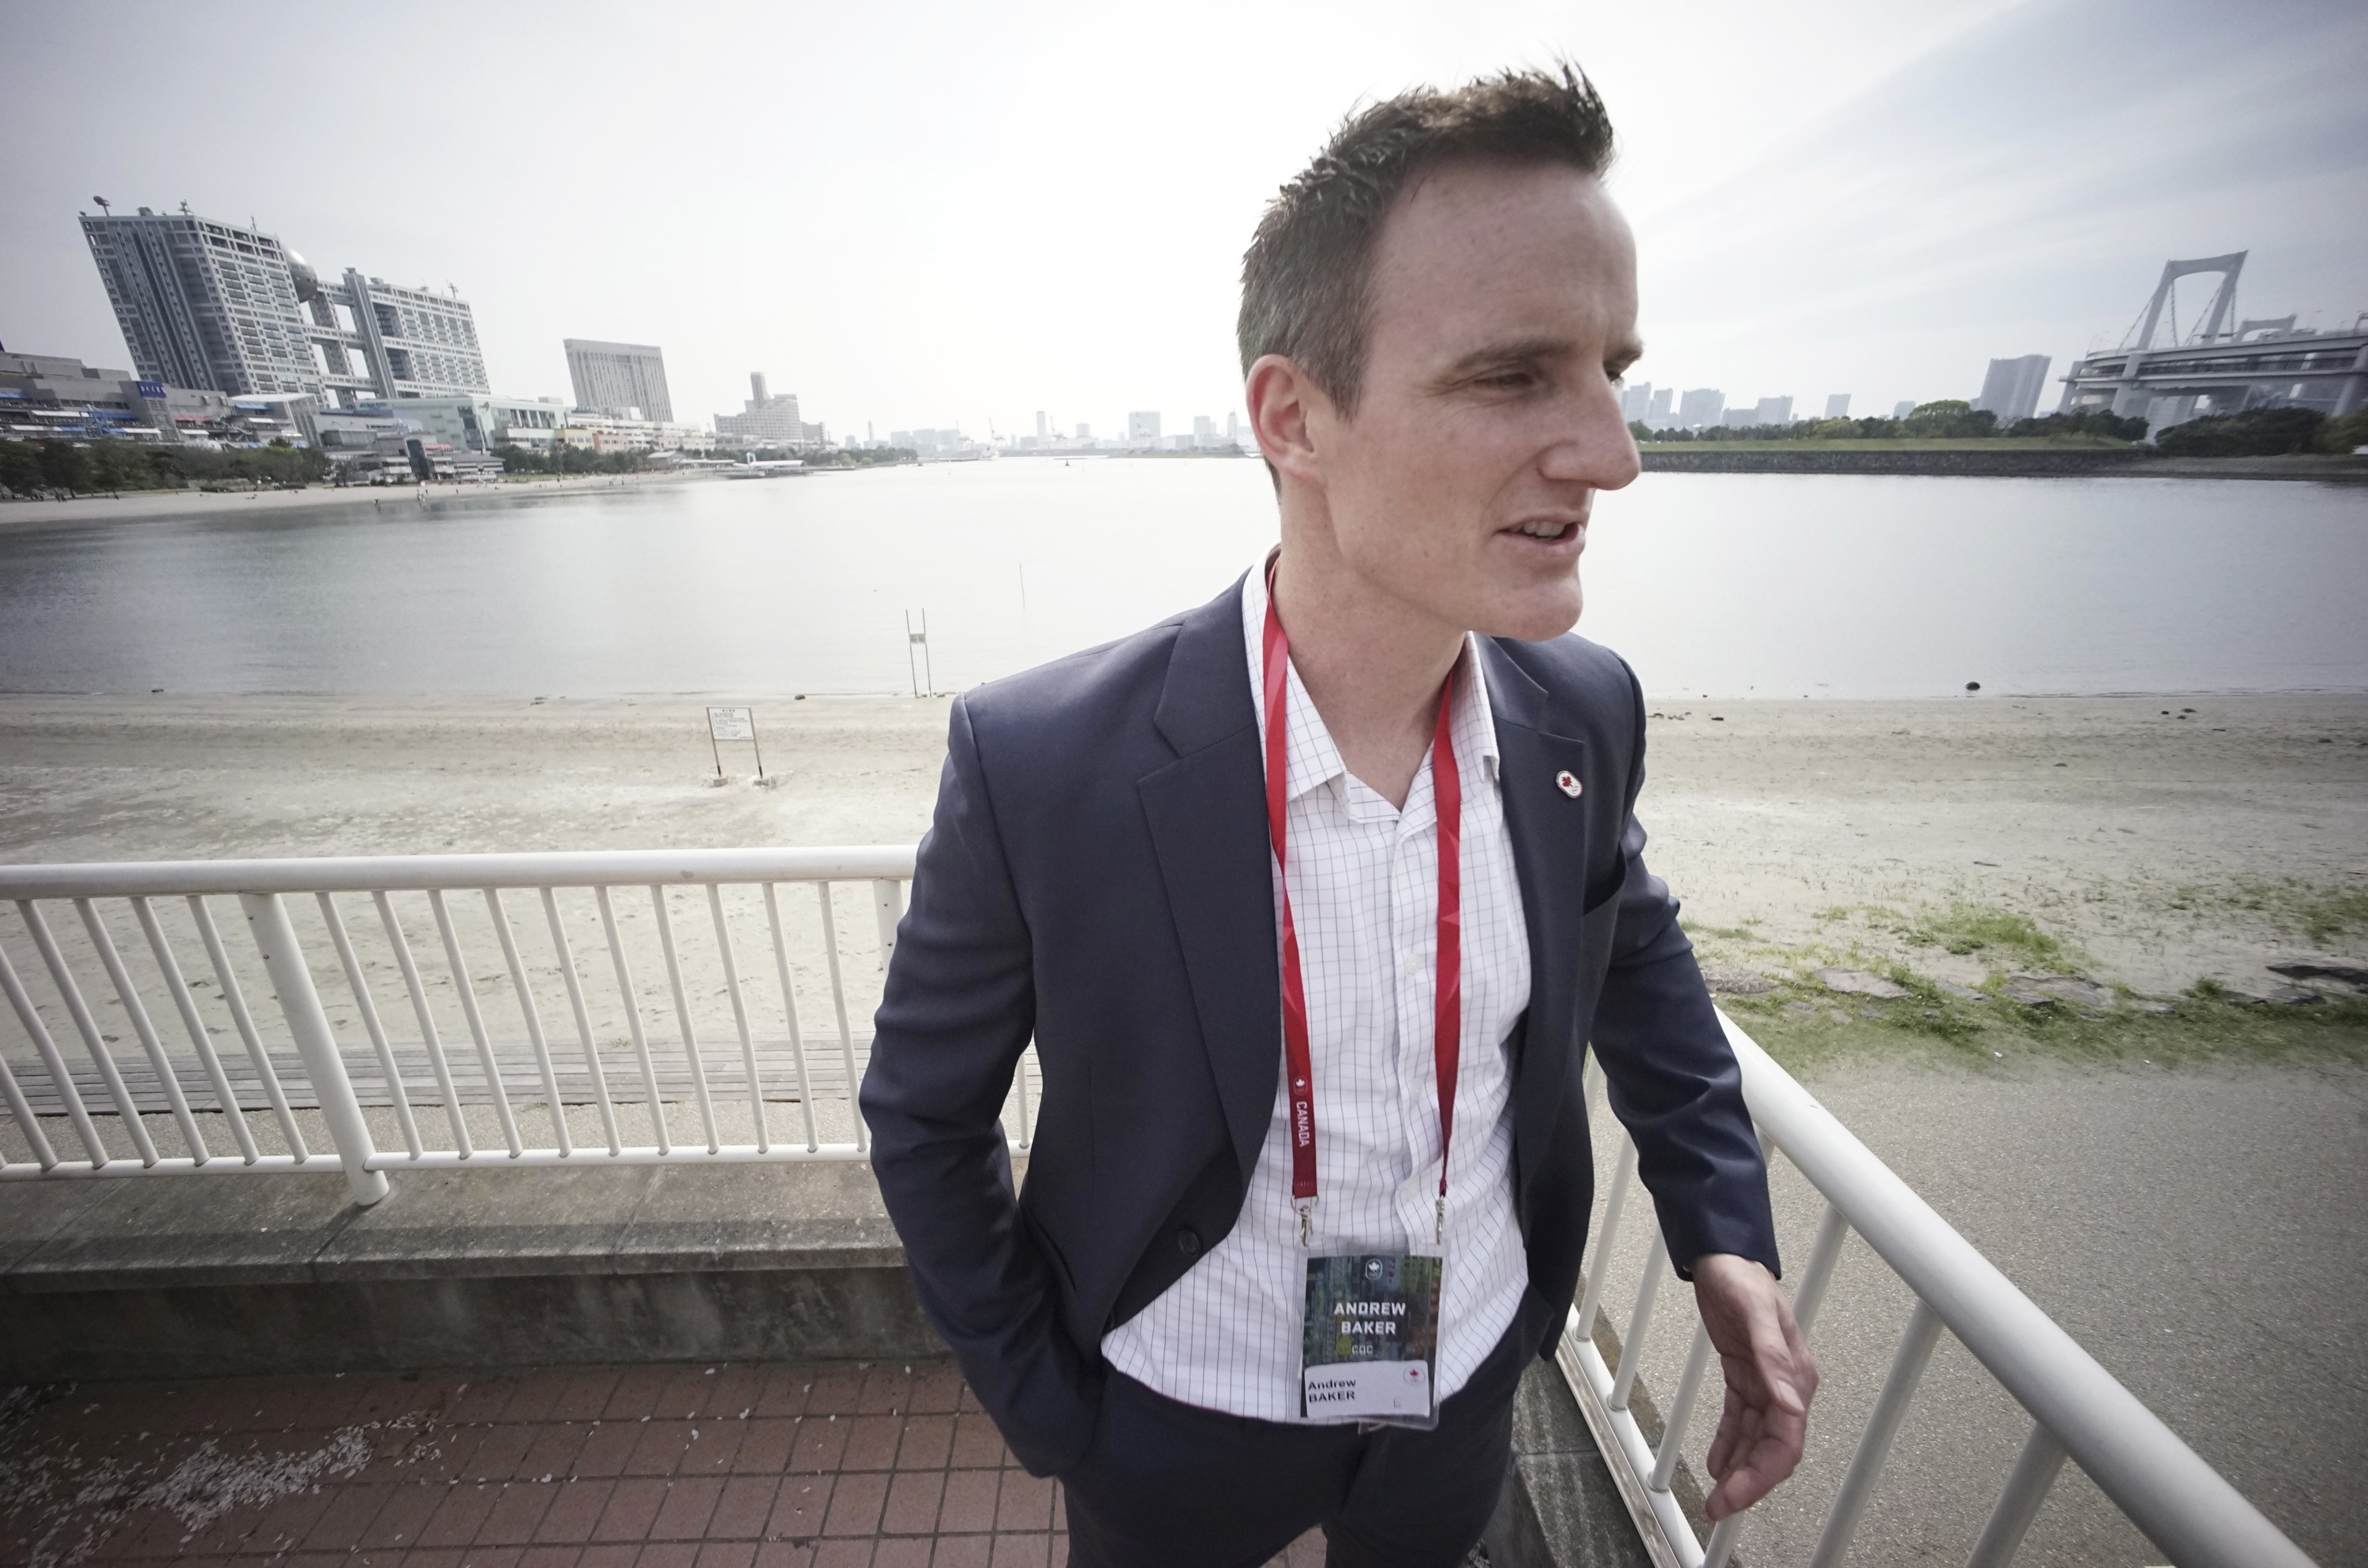 In this Thursday, April 20, 2017 photo, Andrew Baker, Games Director of the Canadian Olympic Committee, speaks at Odaiba Seaside Park, the venue of the Tokyo 2020 Summer Olympic and Paralympic Games, during an interview with The Associated Press in Tokyo.